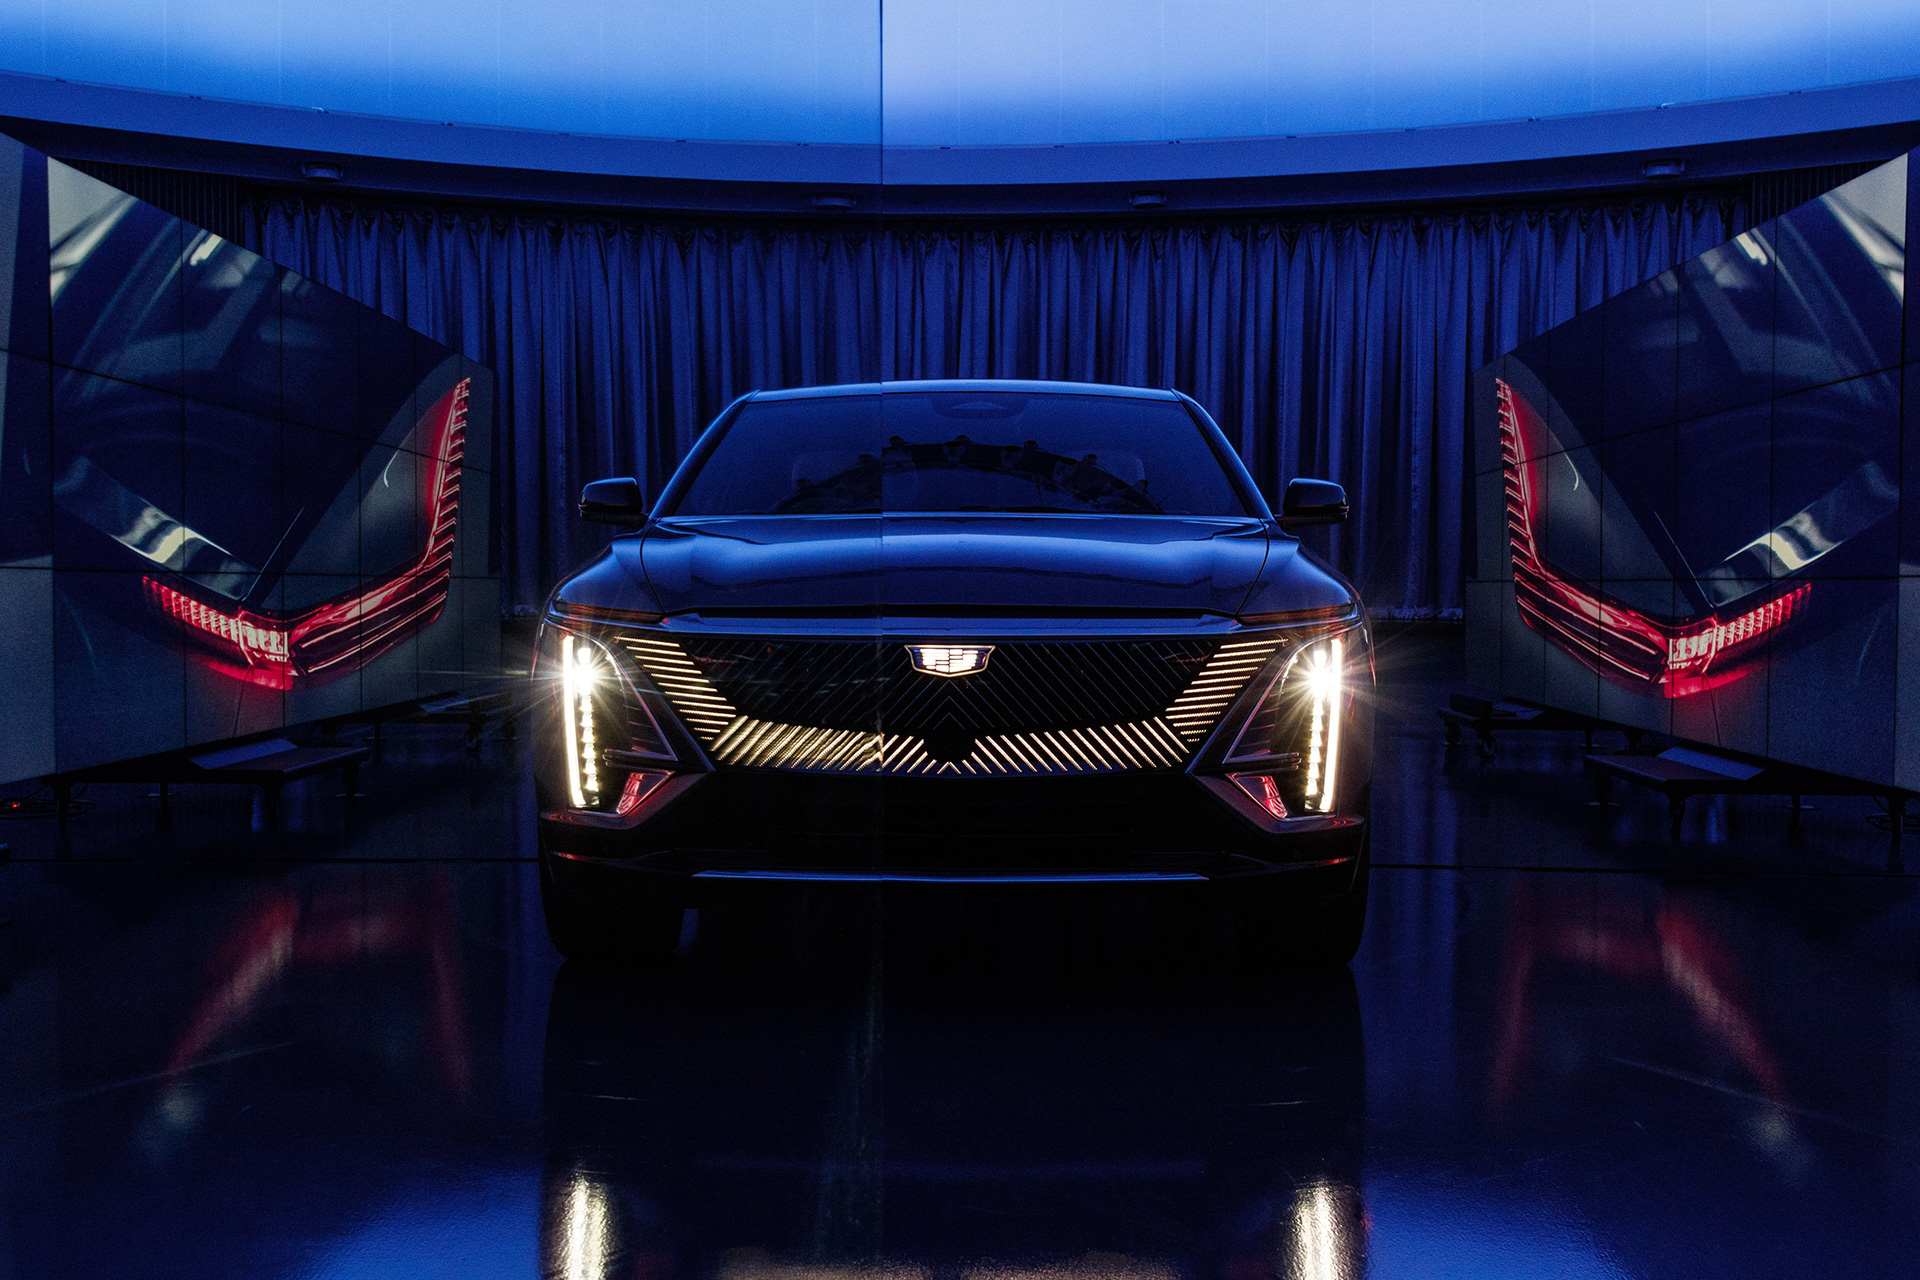 Cadillac's inaugural Lyriq EV sold out of reservations in 19 minutes